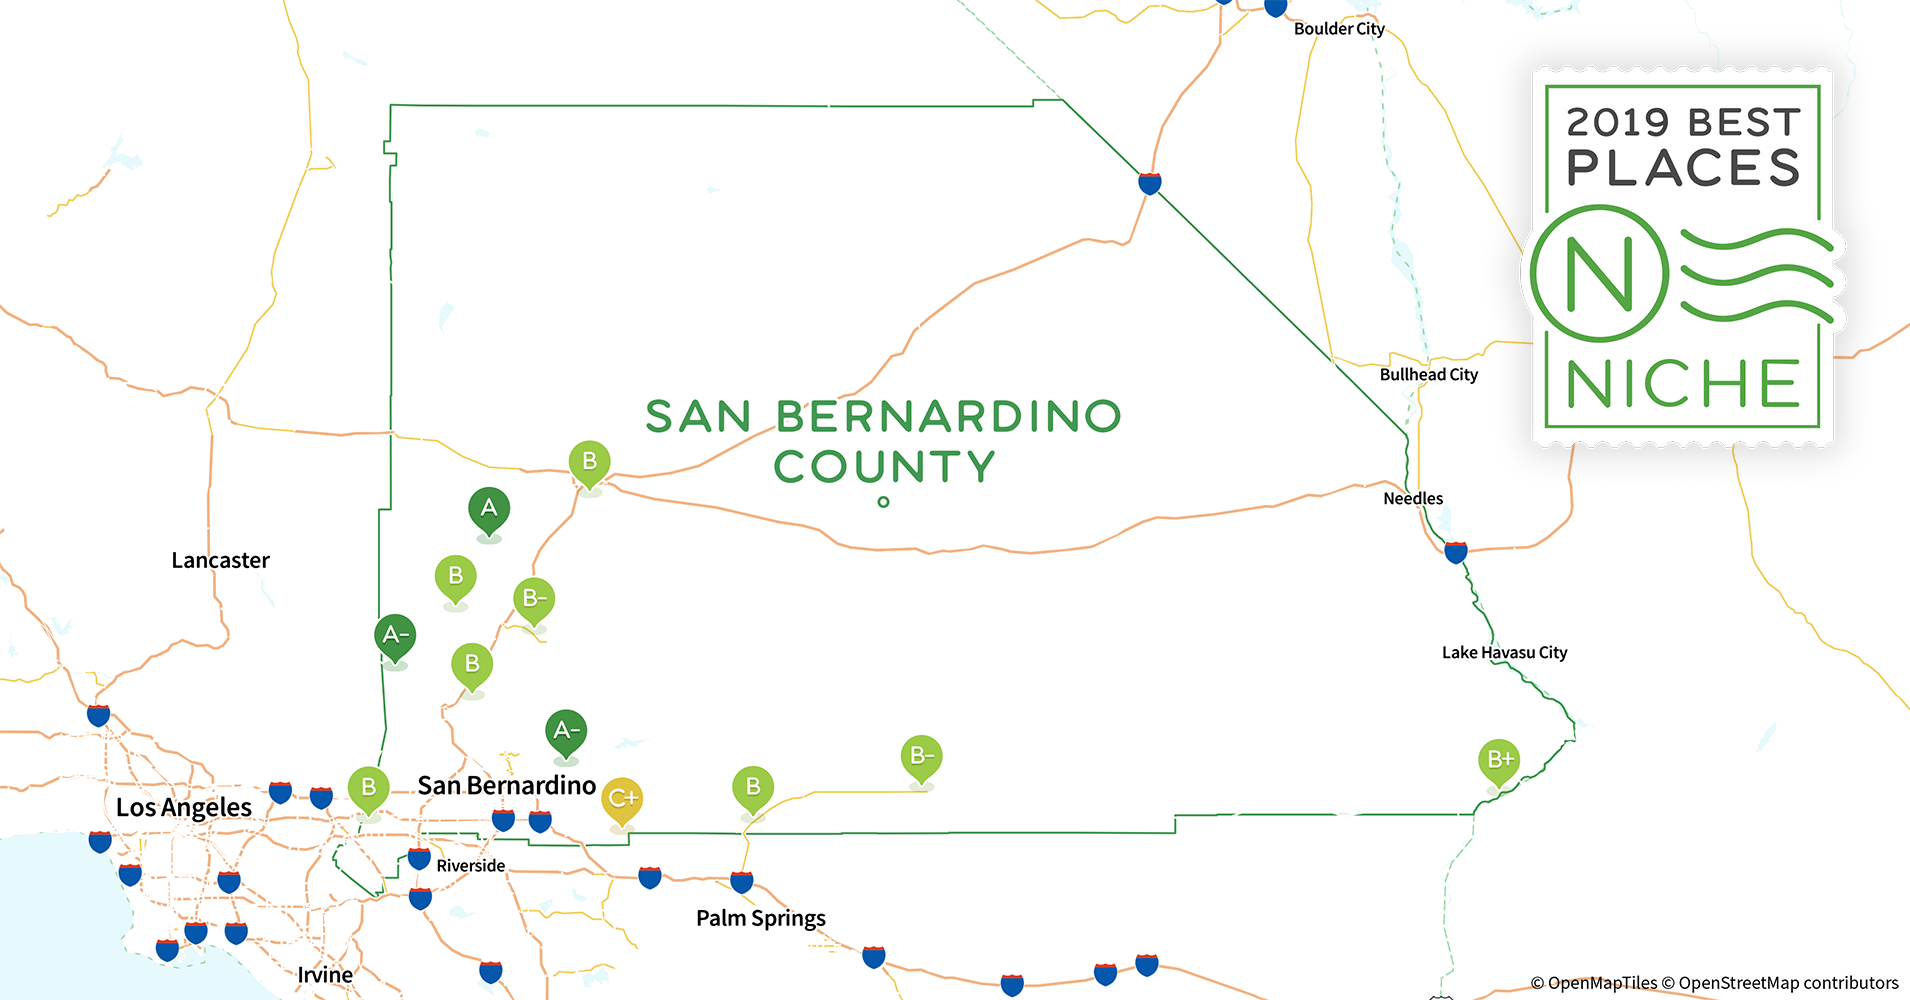 Upland Zip Code Map.2019 Best Places To Live In San Bernardino County Ca Niche